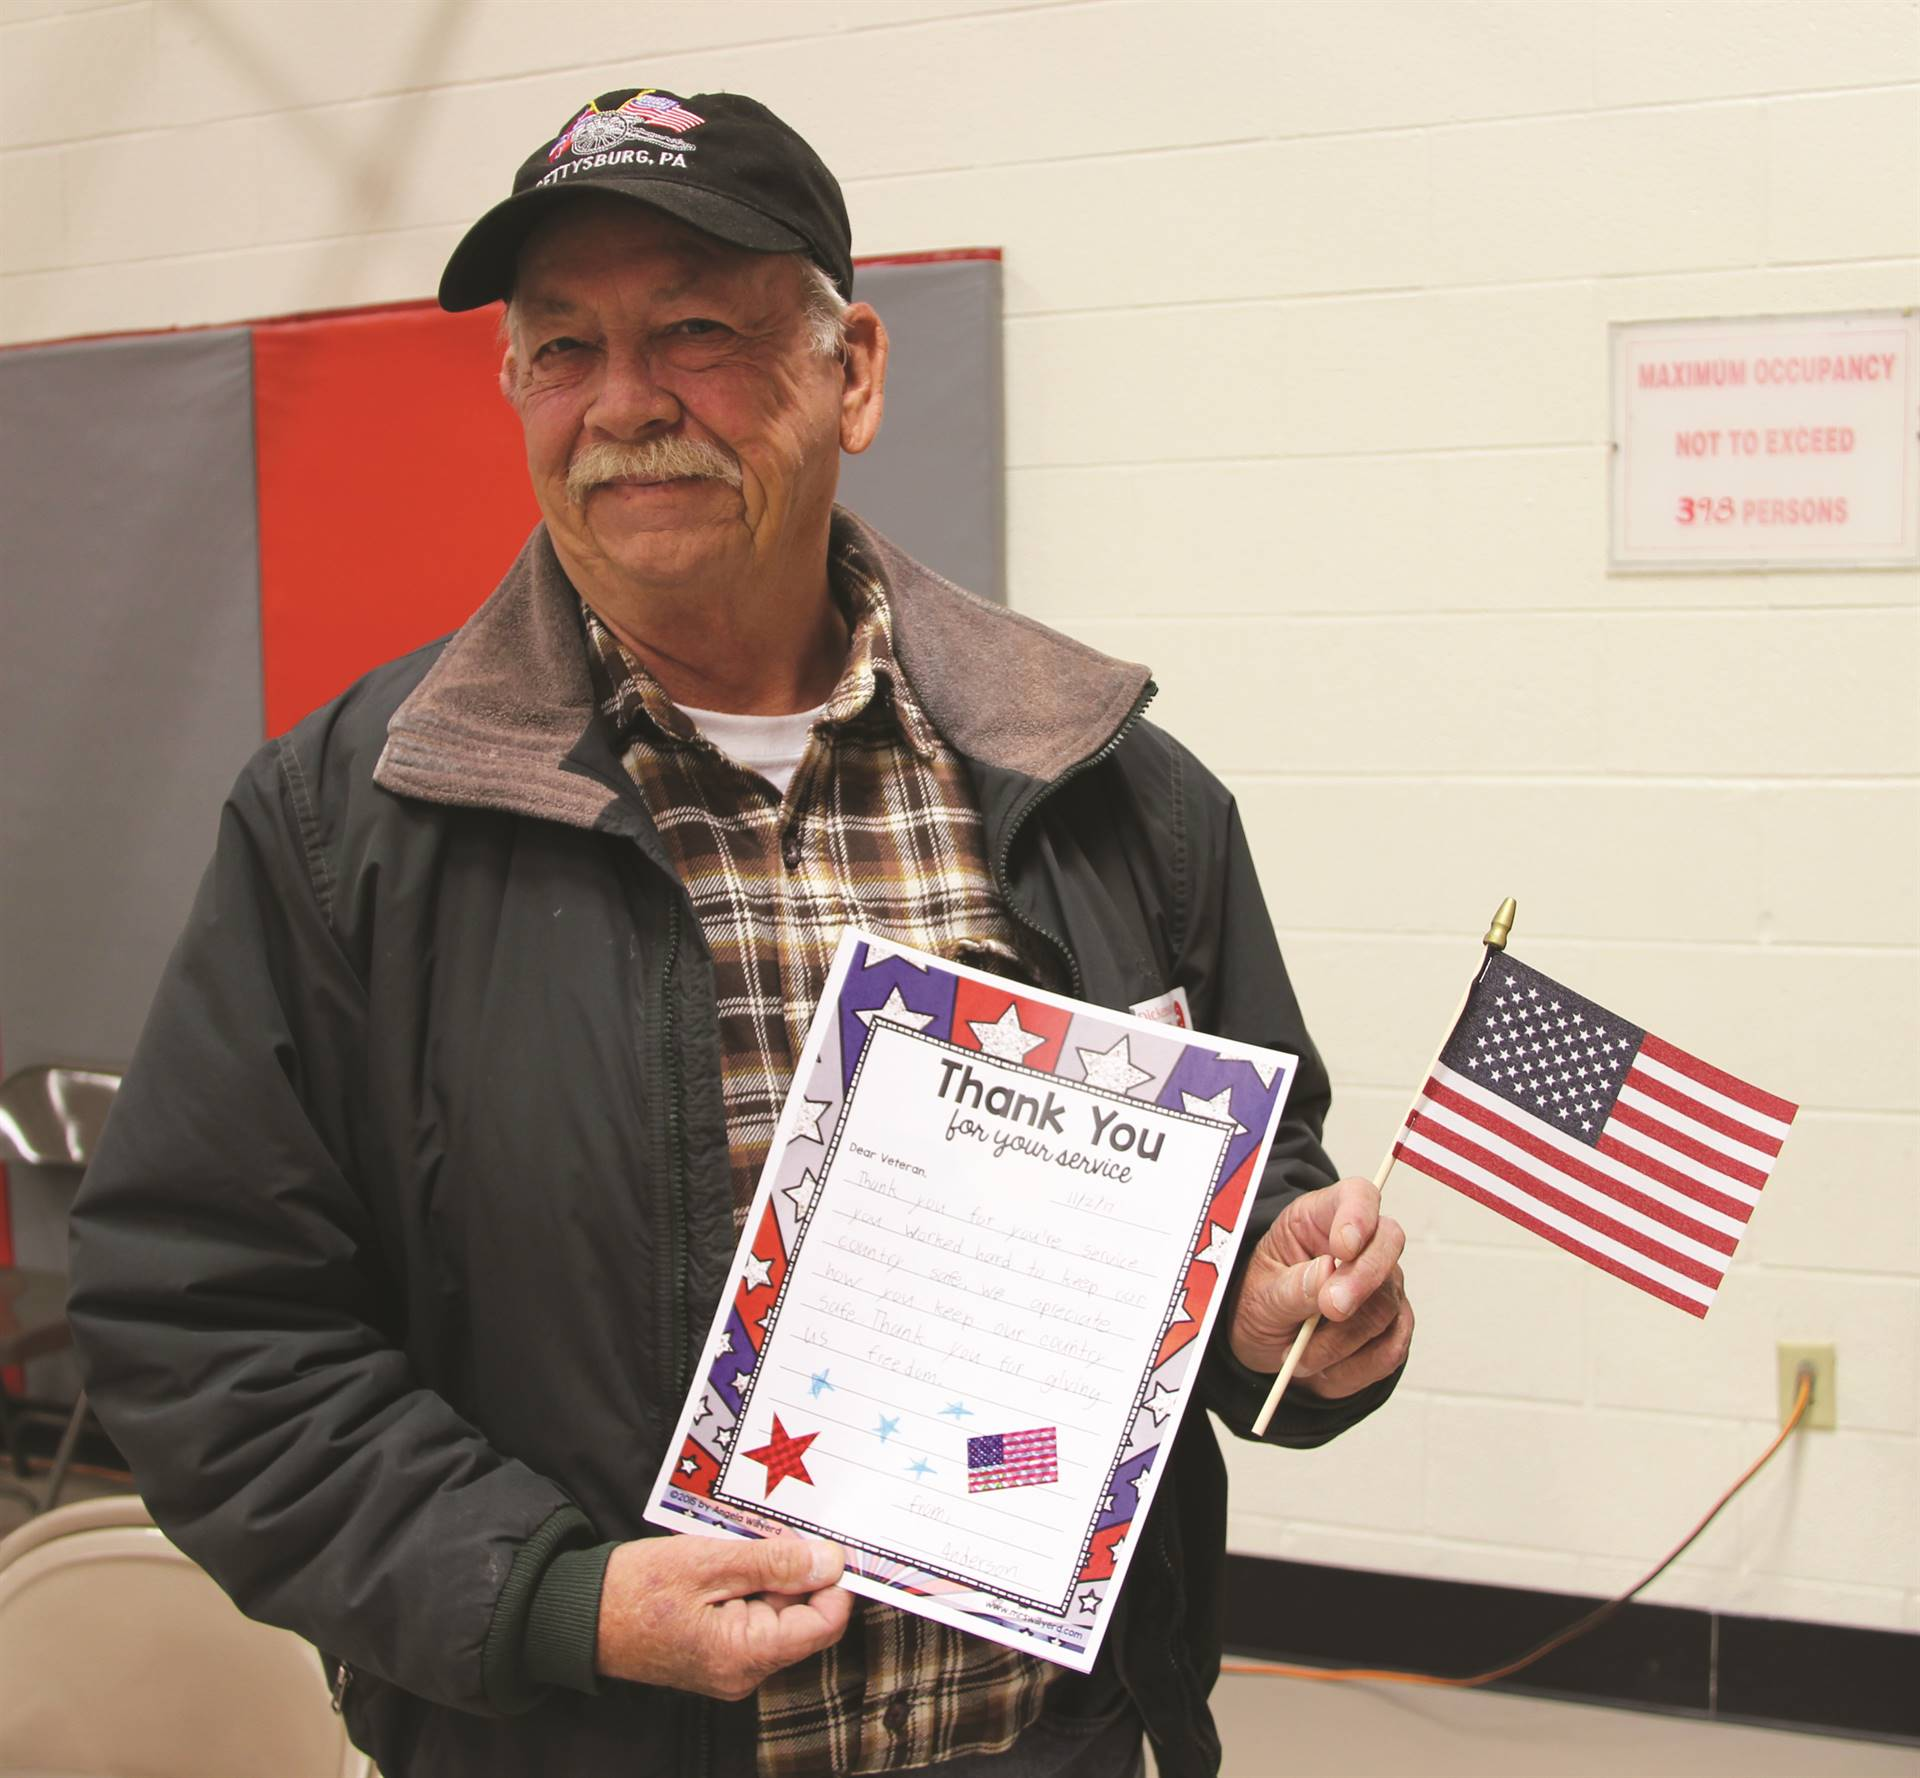 veteran holding up thank you card and flag